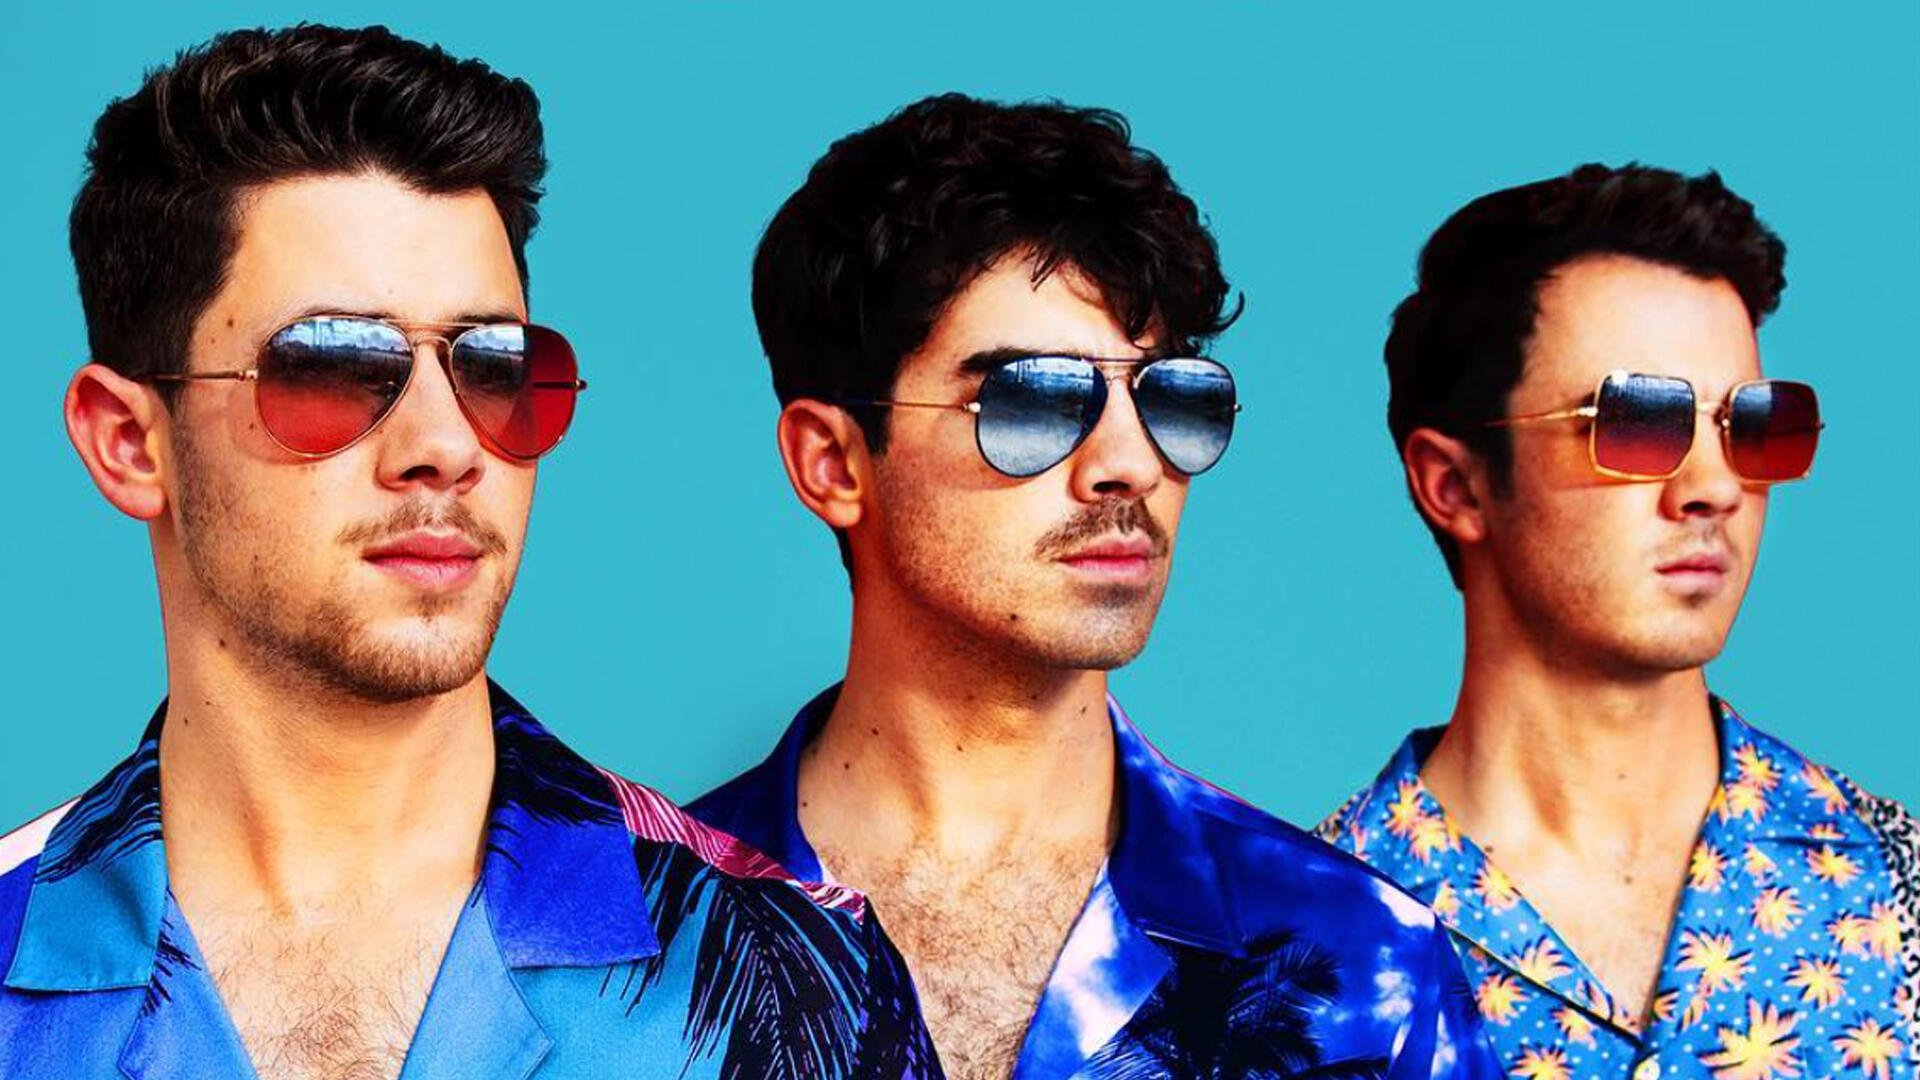 Jonas Brothers to Release Their First Album in 10 Years